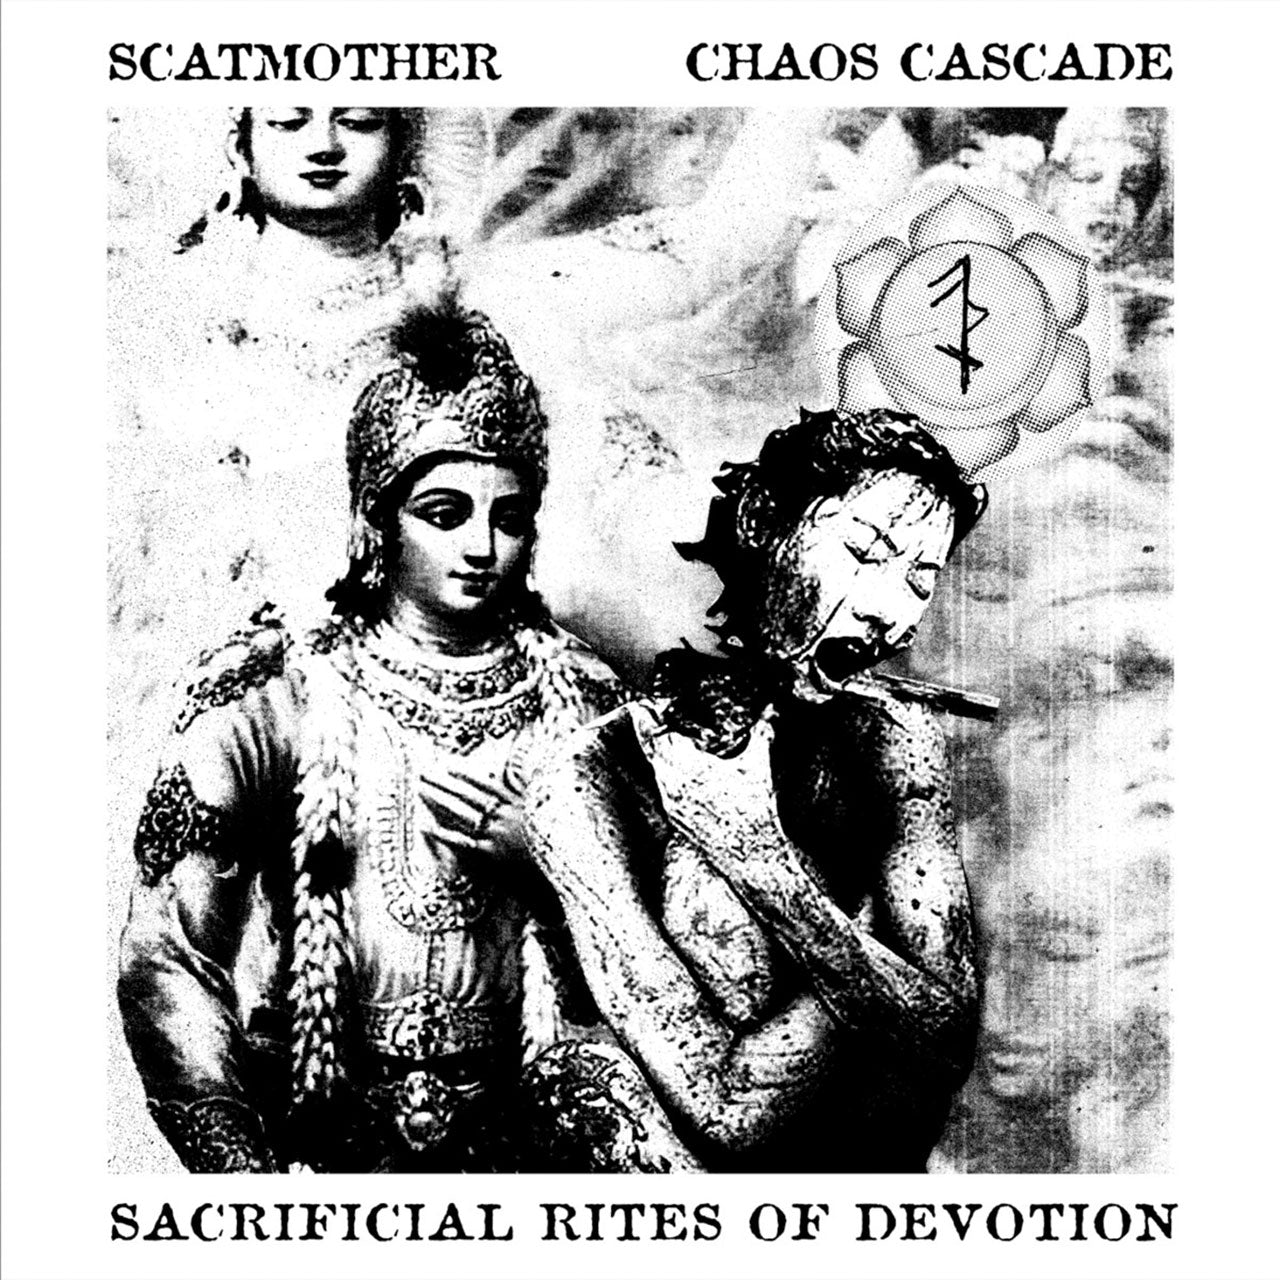 Scatmother / Chaos Cascade - Sacrificial Rites of Devotion (CD)